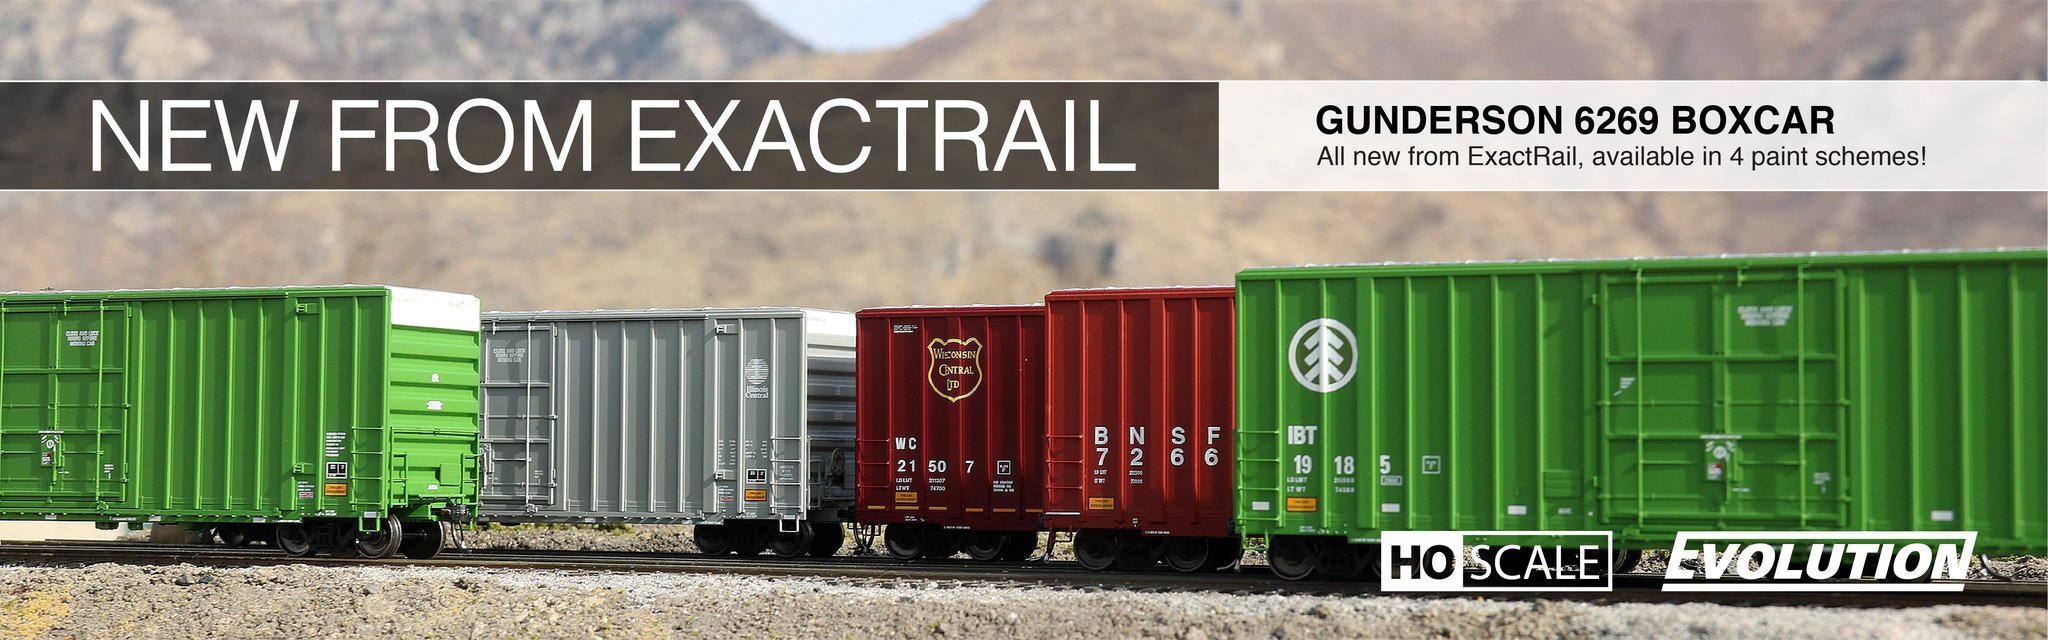 exactrail.com HO Scale Gunderson 6269 Boxcar